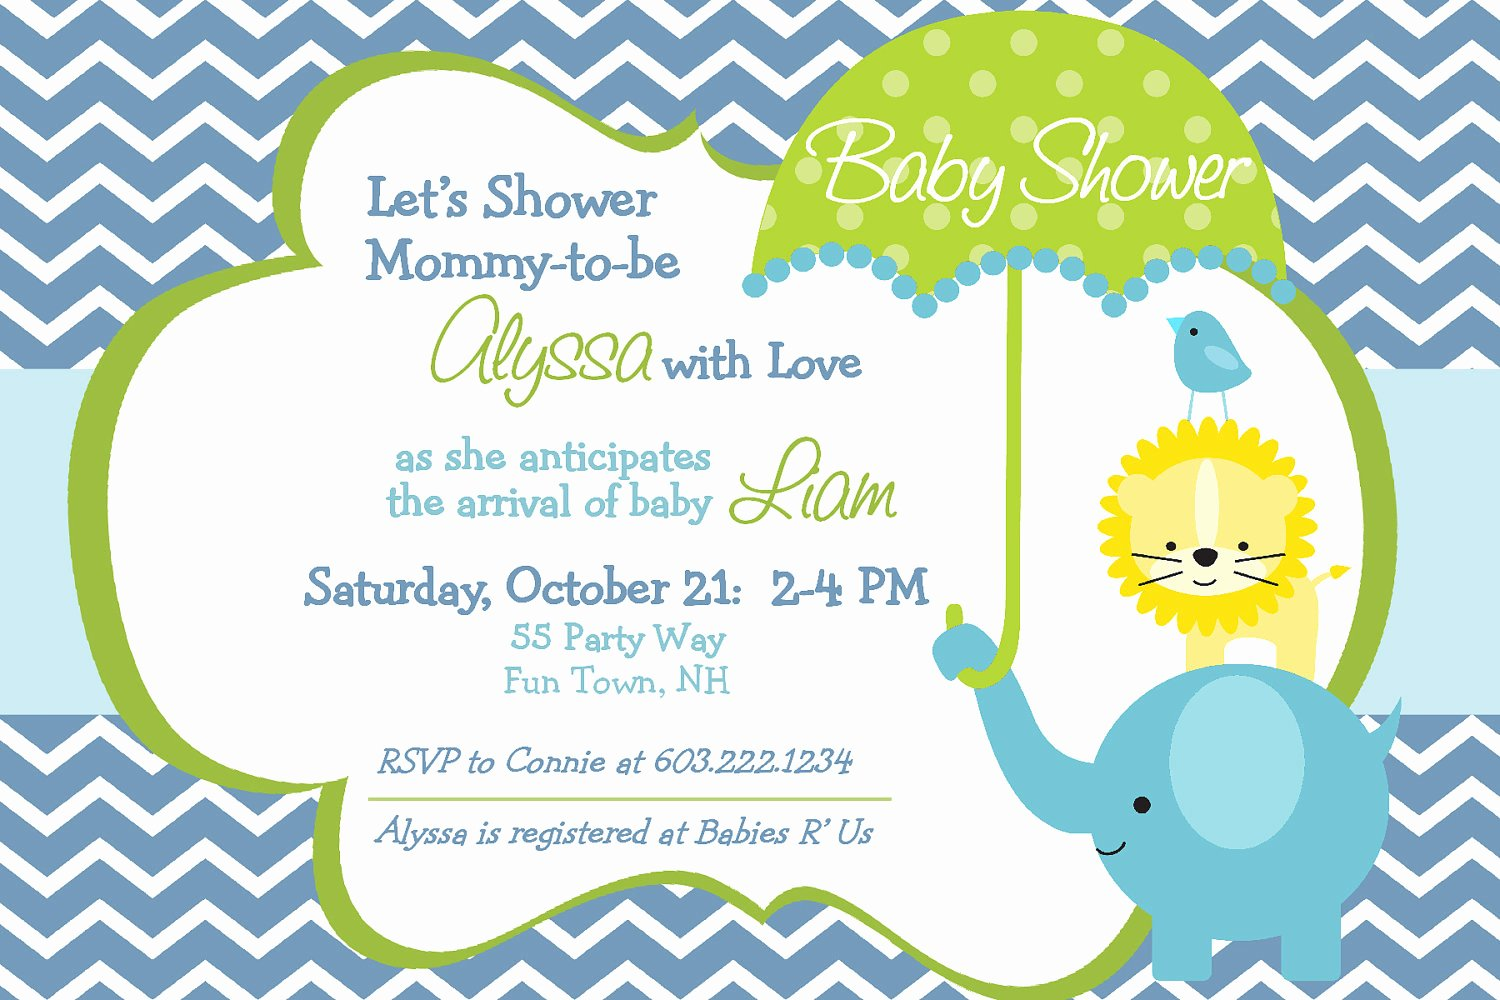 Free Baby Shower Invitation Templates New Baby Shower Invitations for Boy & Girls Baby Shower